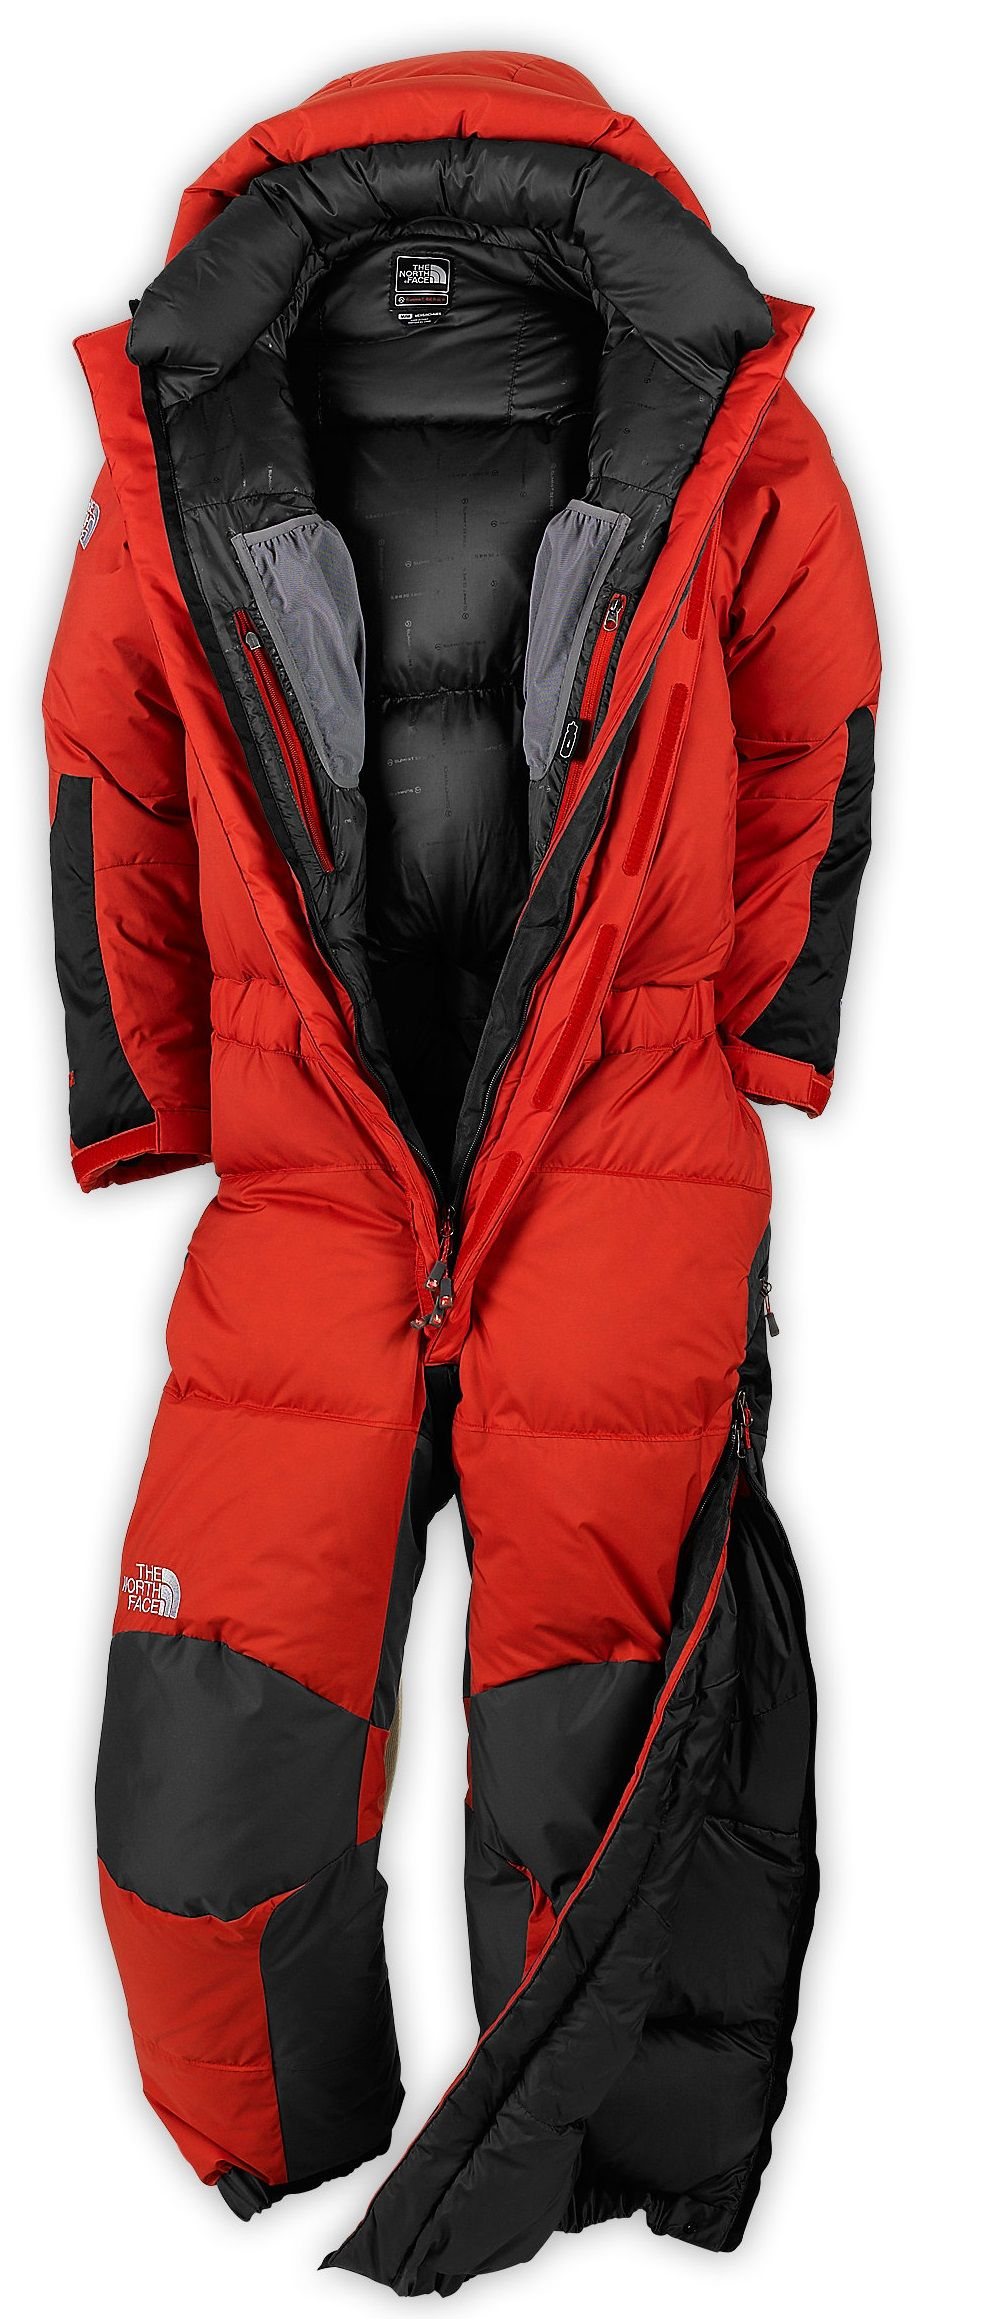 The North Face - Downy jumpsuit HIMALAYAN SUIT buy the online store  SkayGear.RU 232855e23ddb